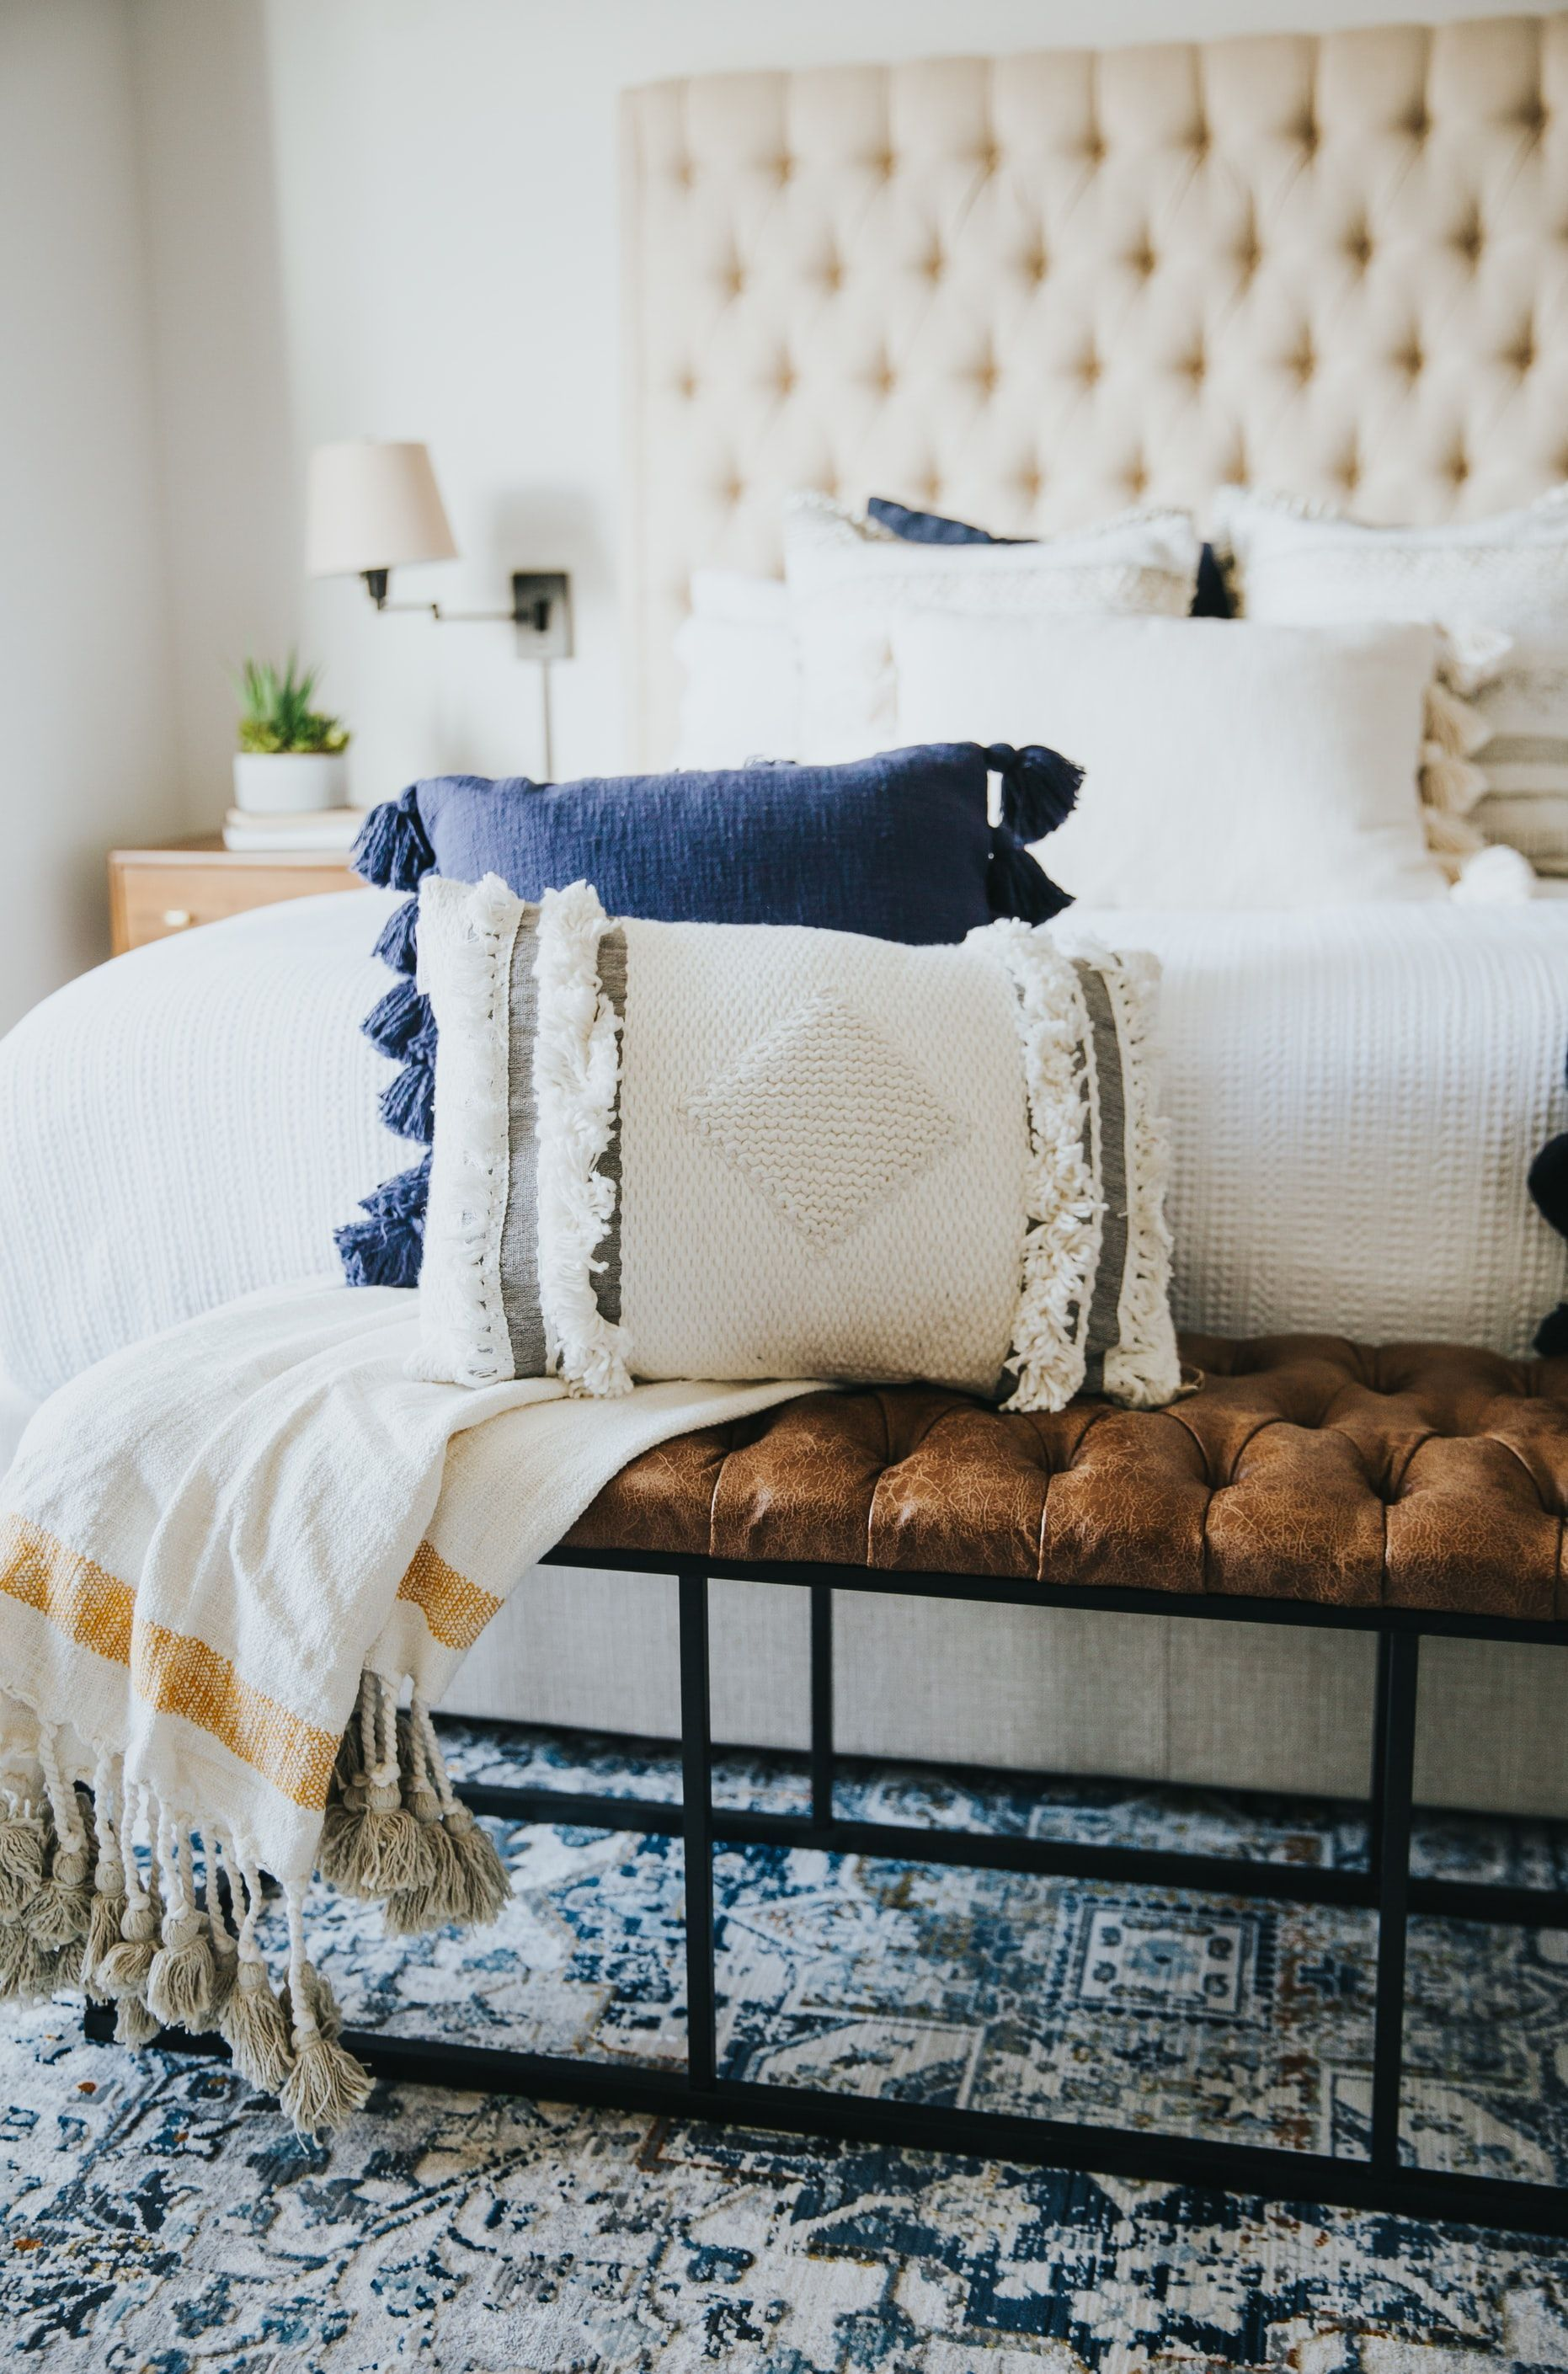 Throw pillos and blanket on top of a metallic bench over a blue area rug. #classic #homedecor #interiordesign #bedroom #bedroomdecor #homestyle #bedroomstyle #classicdecor #classicbedroom #whitedecor #whitebedroomdecor #whiteclassicdecor